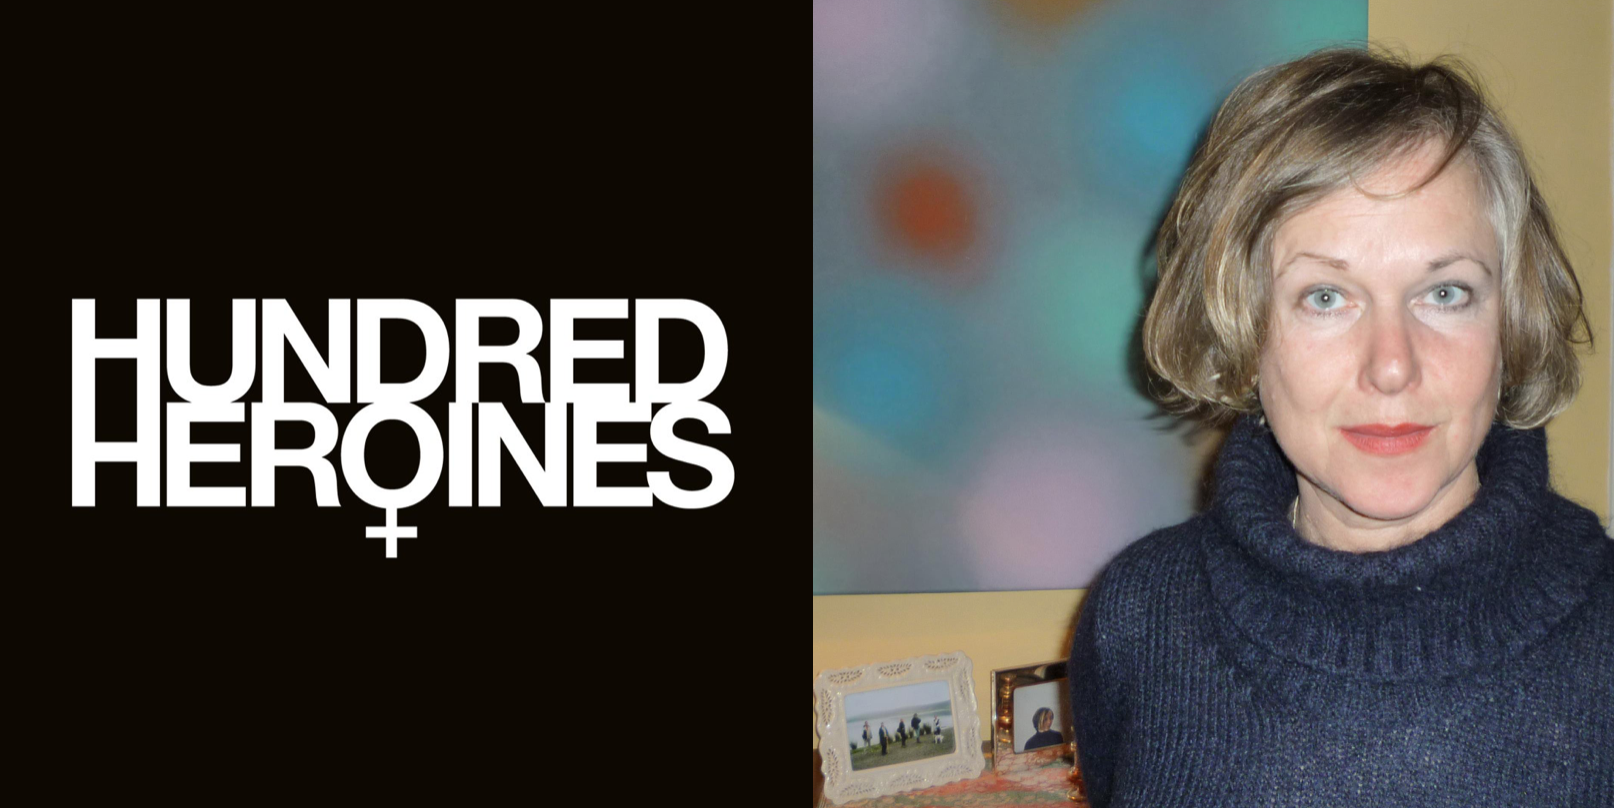 Photograph of artist Helen Sear with Hundred Heroines graphic.